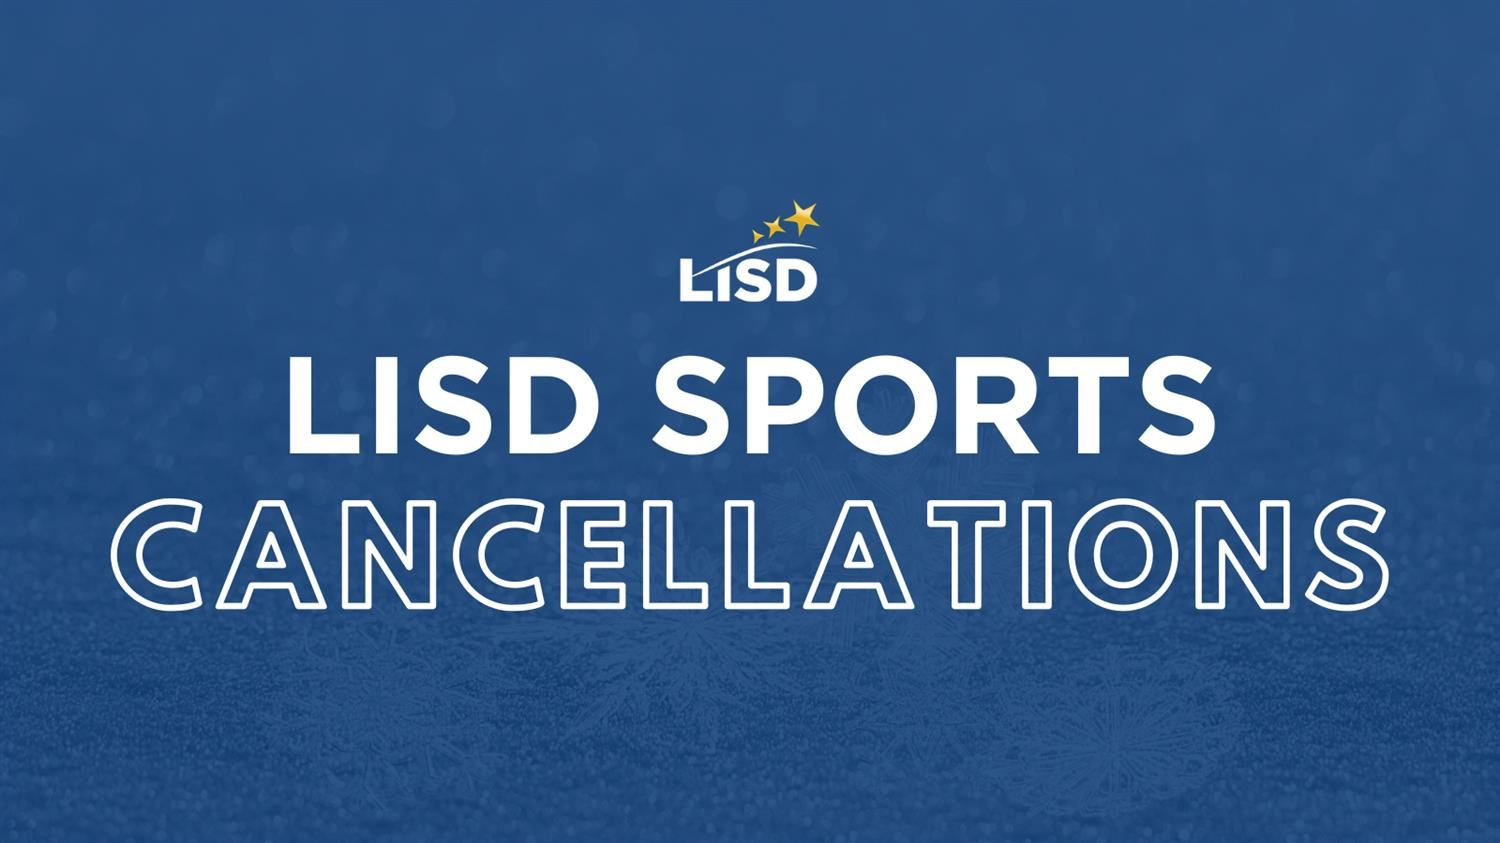 LISD Sports Cancellations